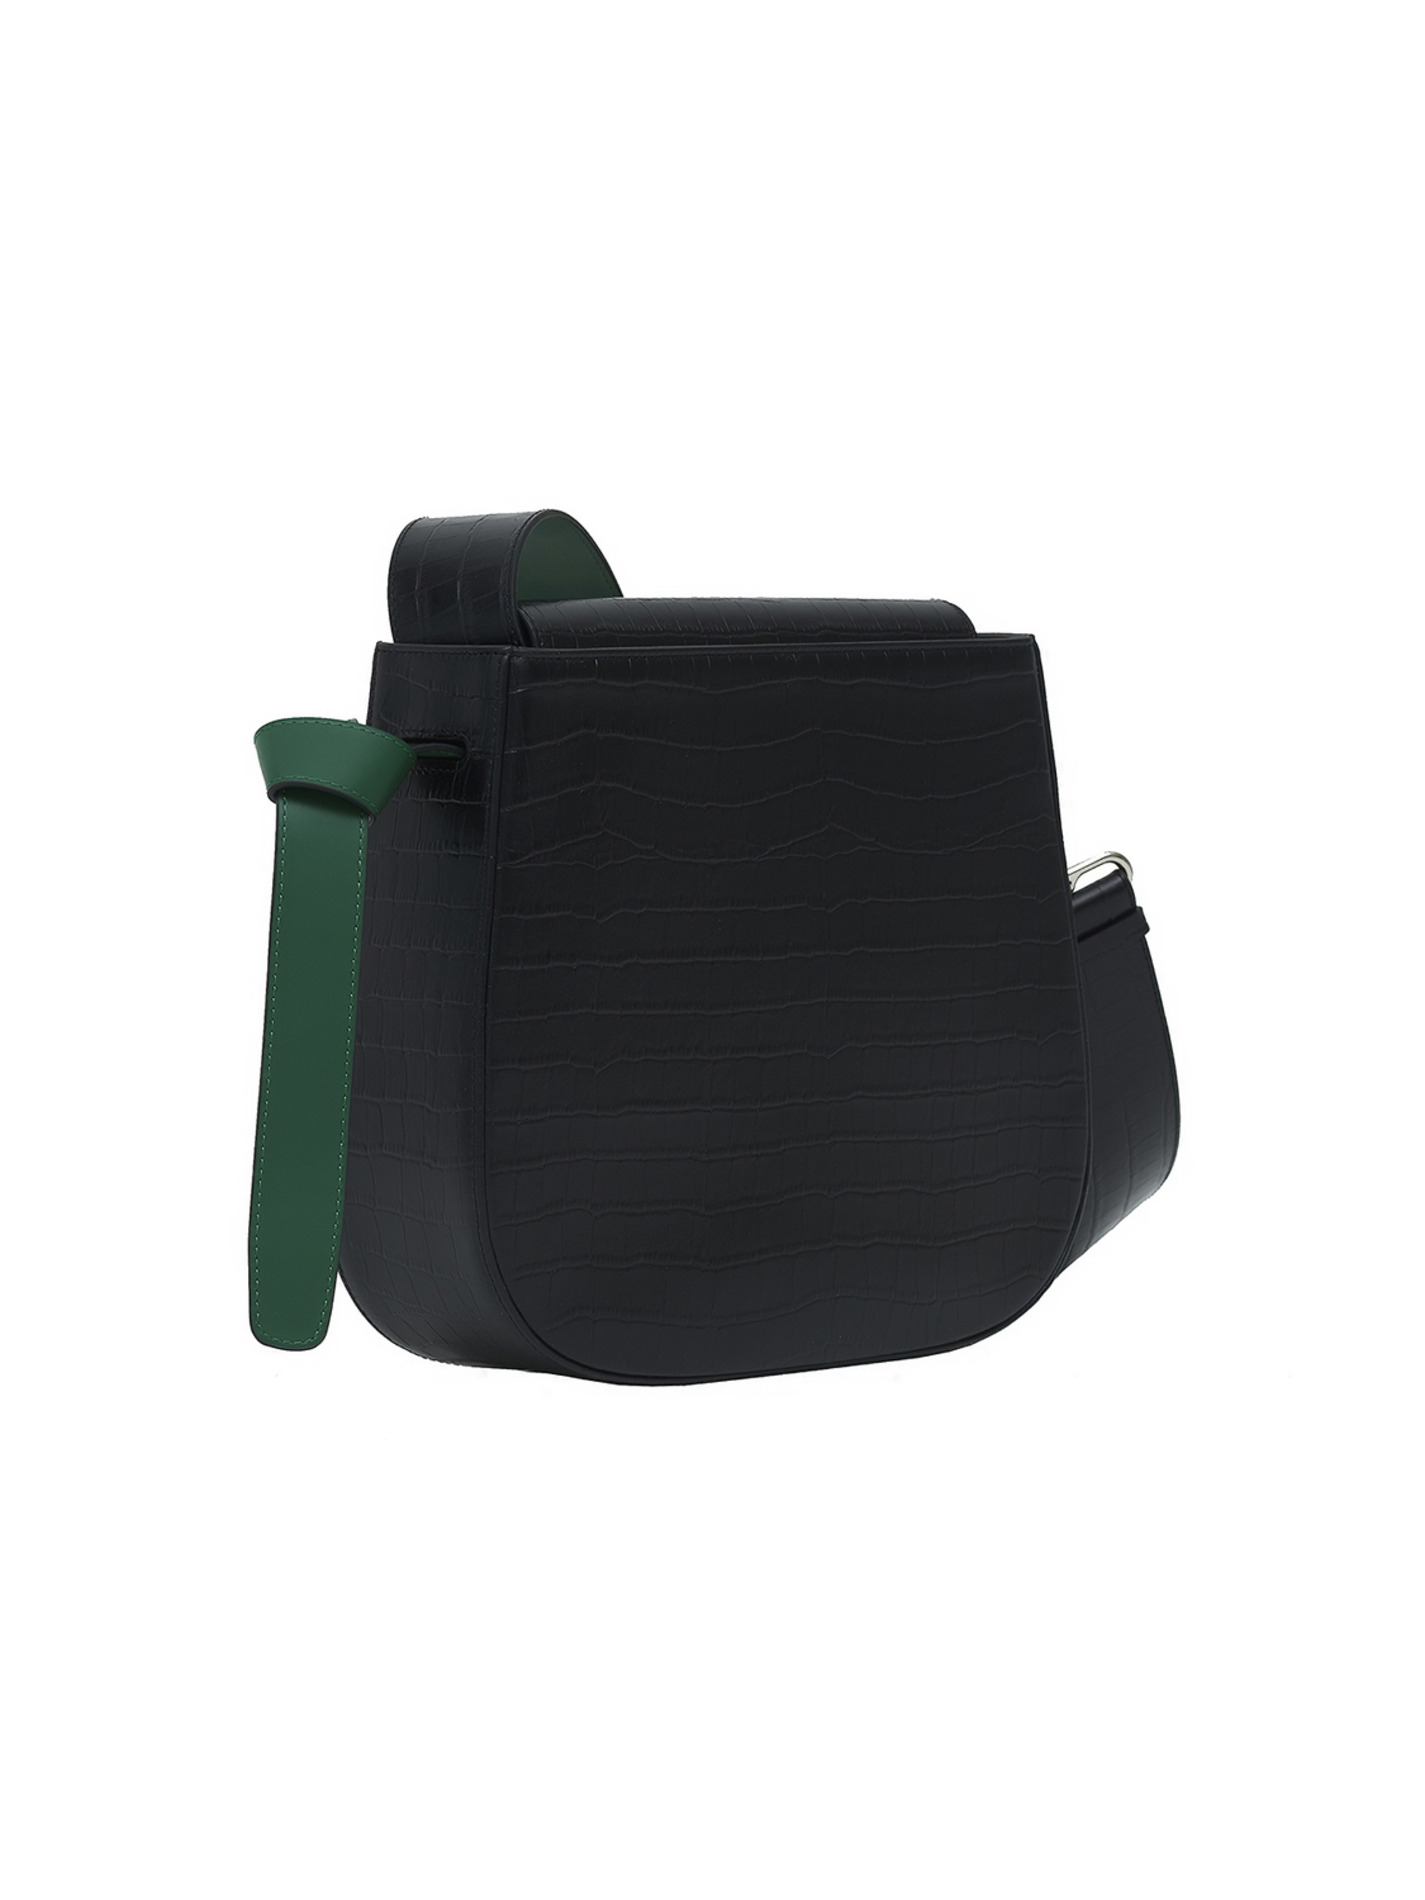 COLOR BLOCK BAG -BIG WANI BLACK  [Summer Sale -50%]